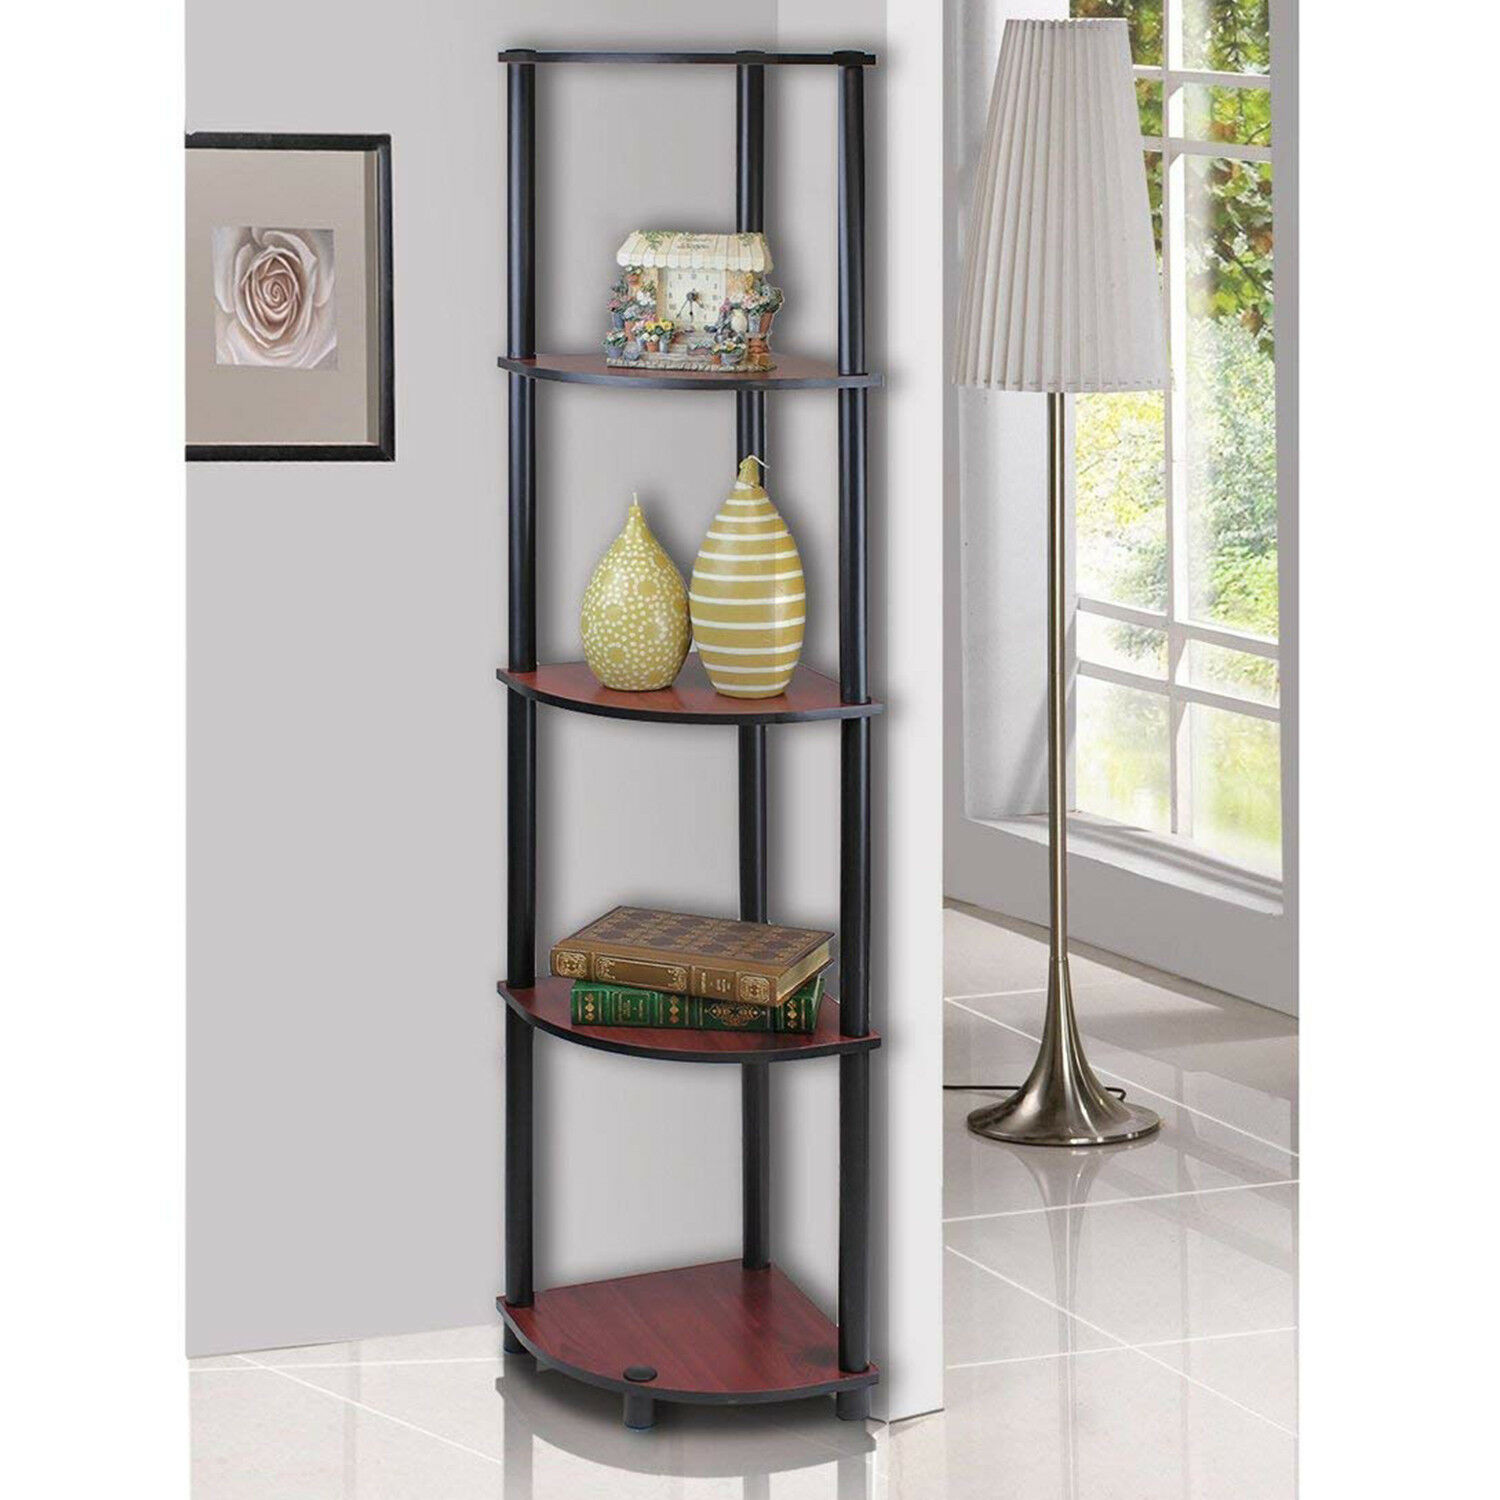 Details About 5 Tier Modern Bookcase Shelfving Display Wall Wood Rack Bath Room Wall Decor Us